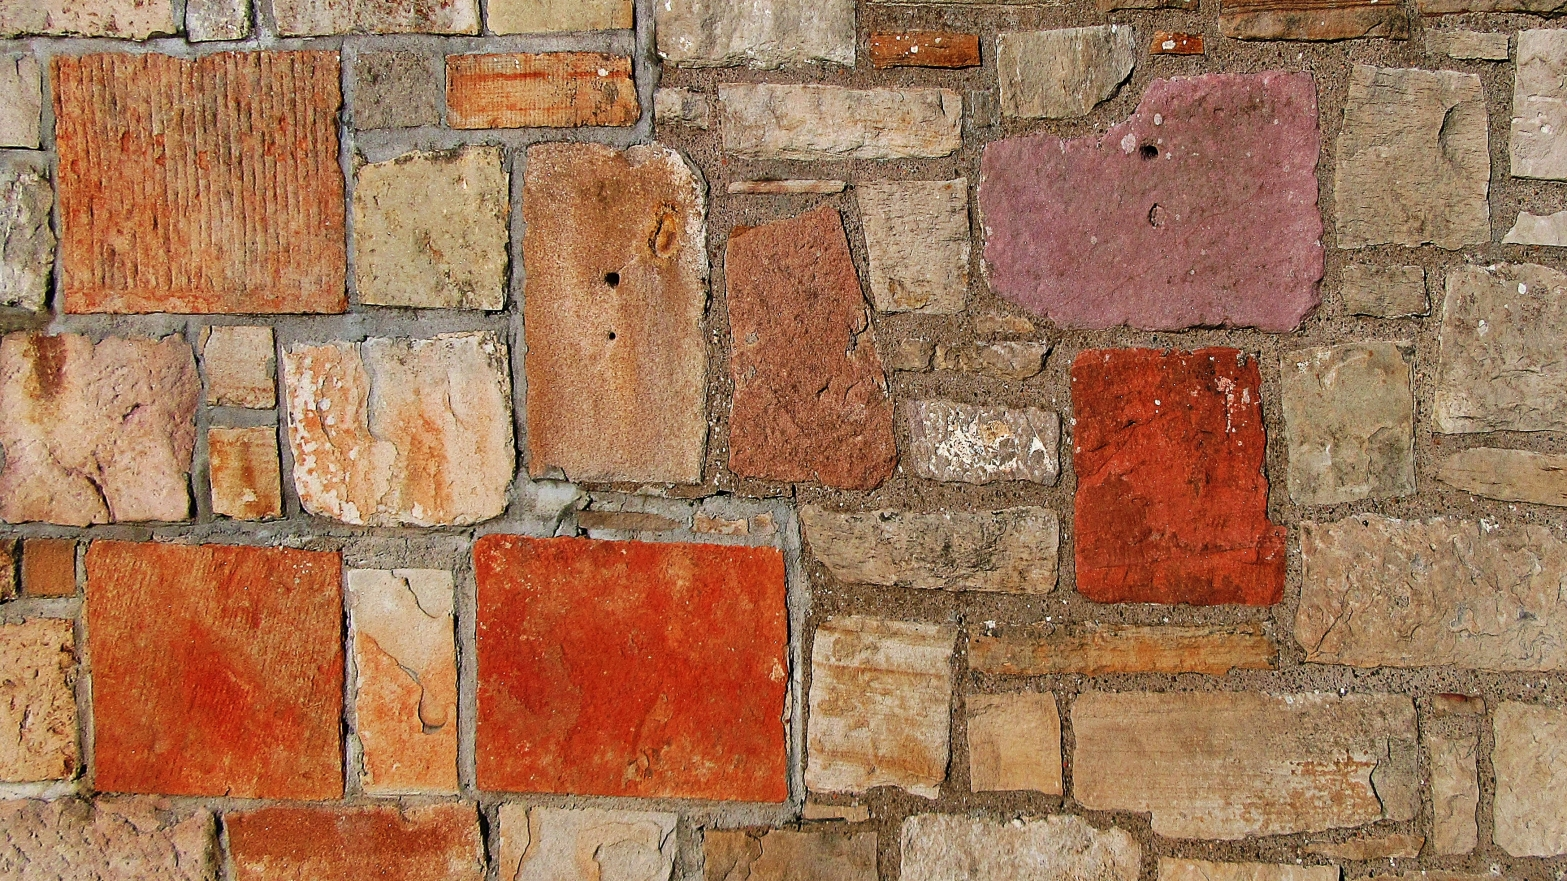 Image shows a close up of an irregular brick path